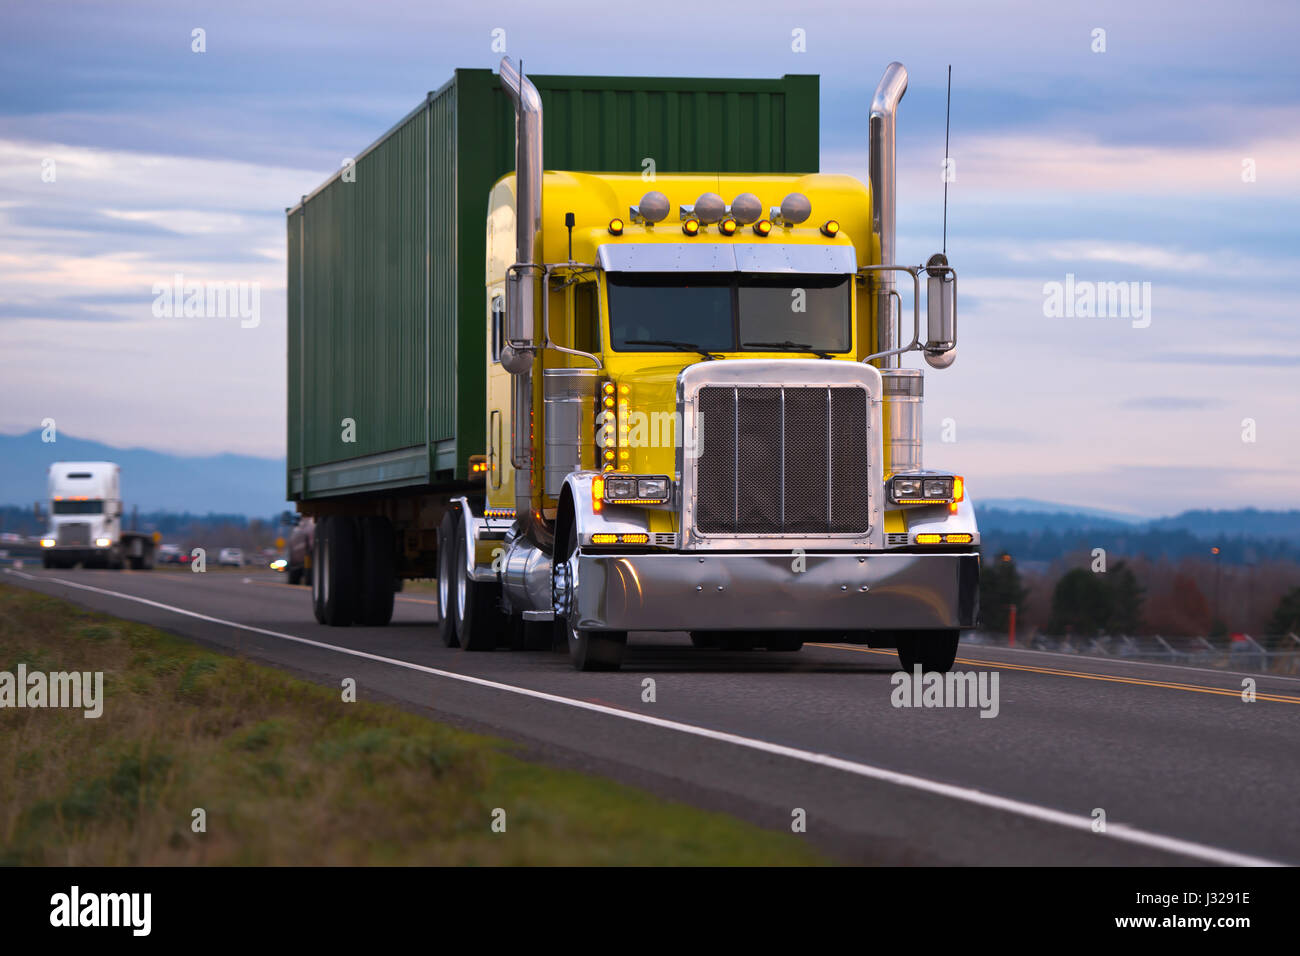 Classic American powerful yellow big rig semi truck with high chrome tailpipes powerful headlights and green container - Stock Image